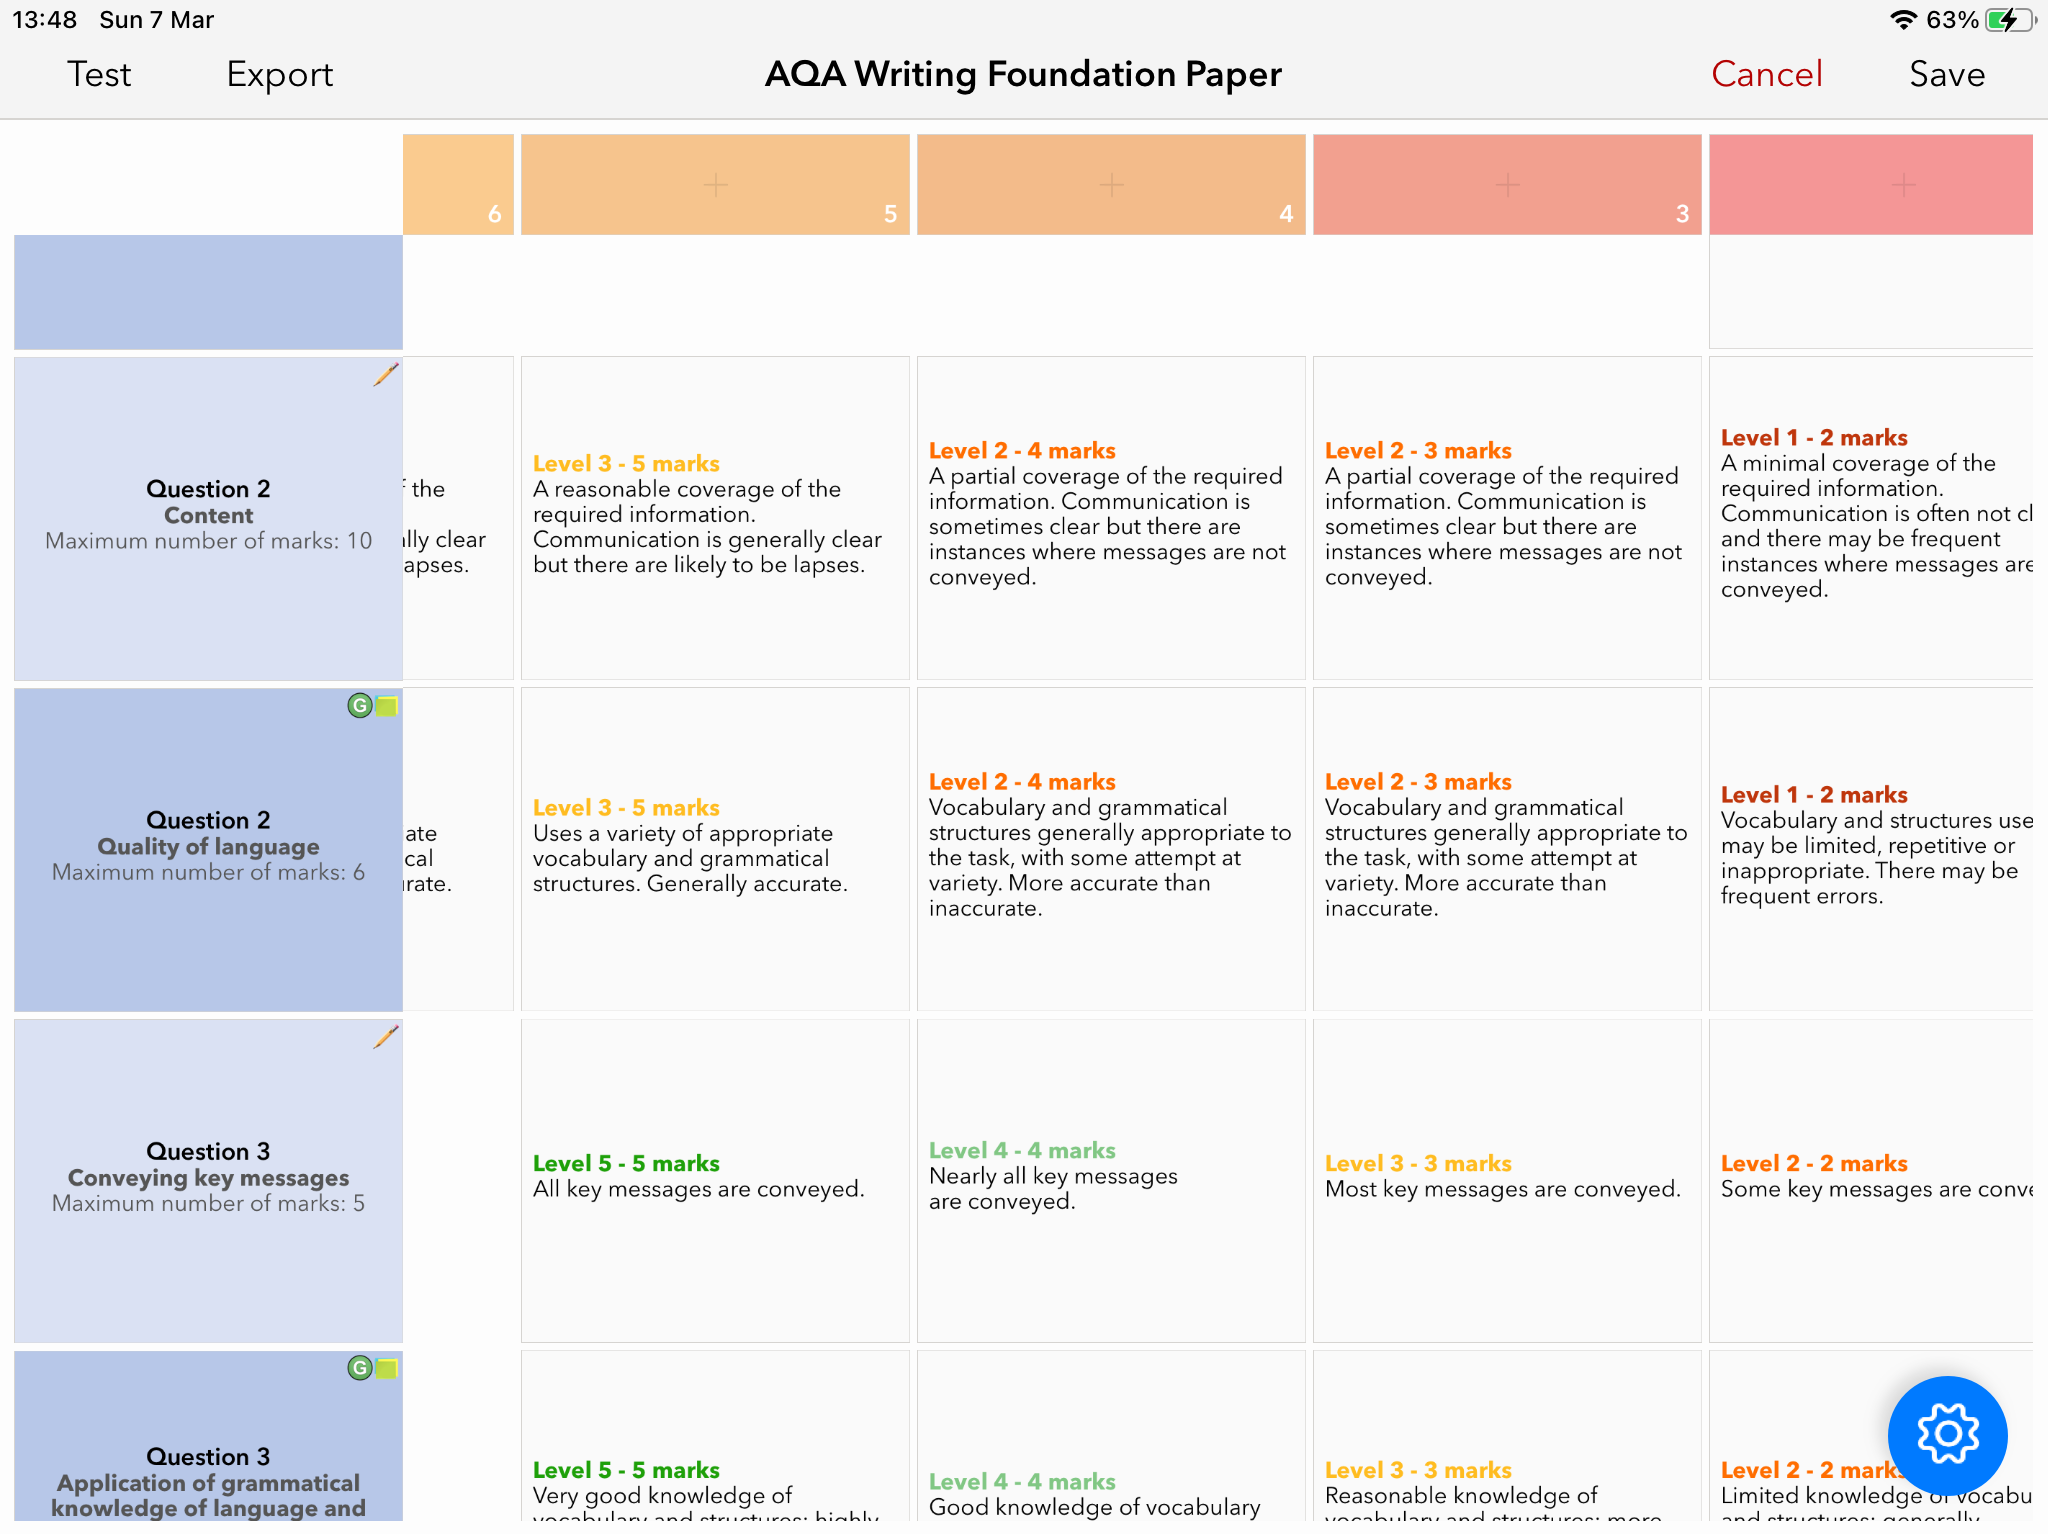 AQA Languages GCSE Speaking and Writing (Foundation and Higher) Mark Schemes on PDF and Rubrics for iDoceo